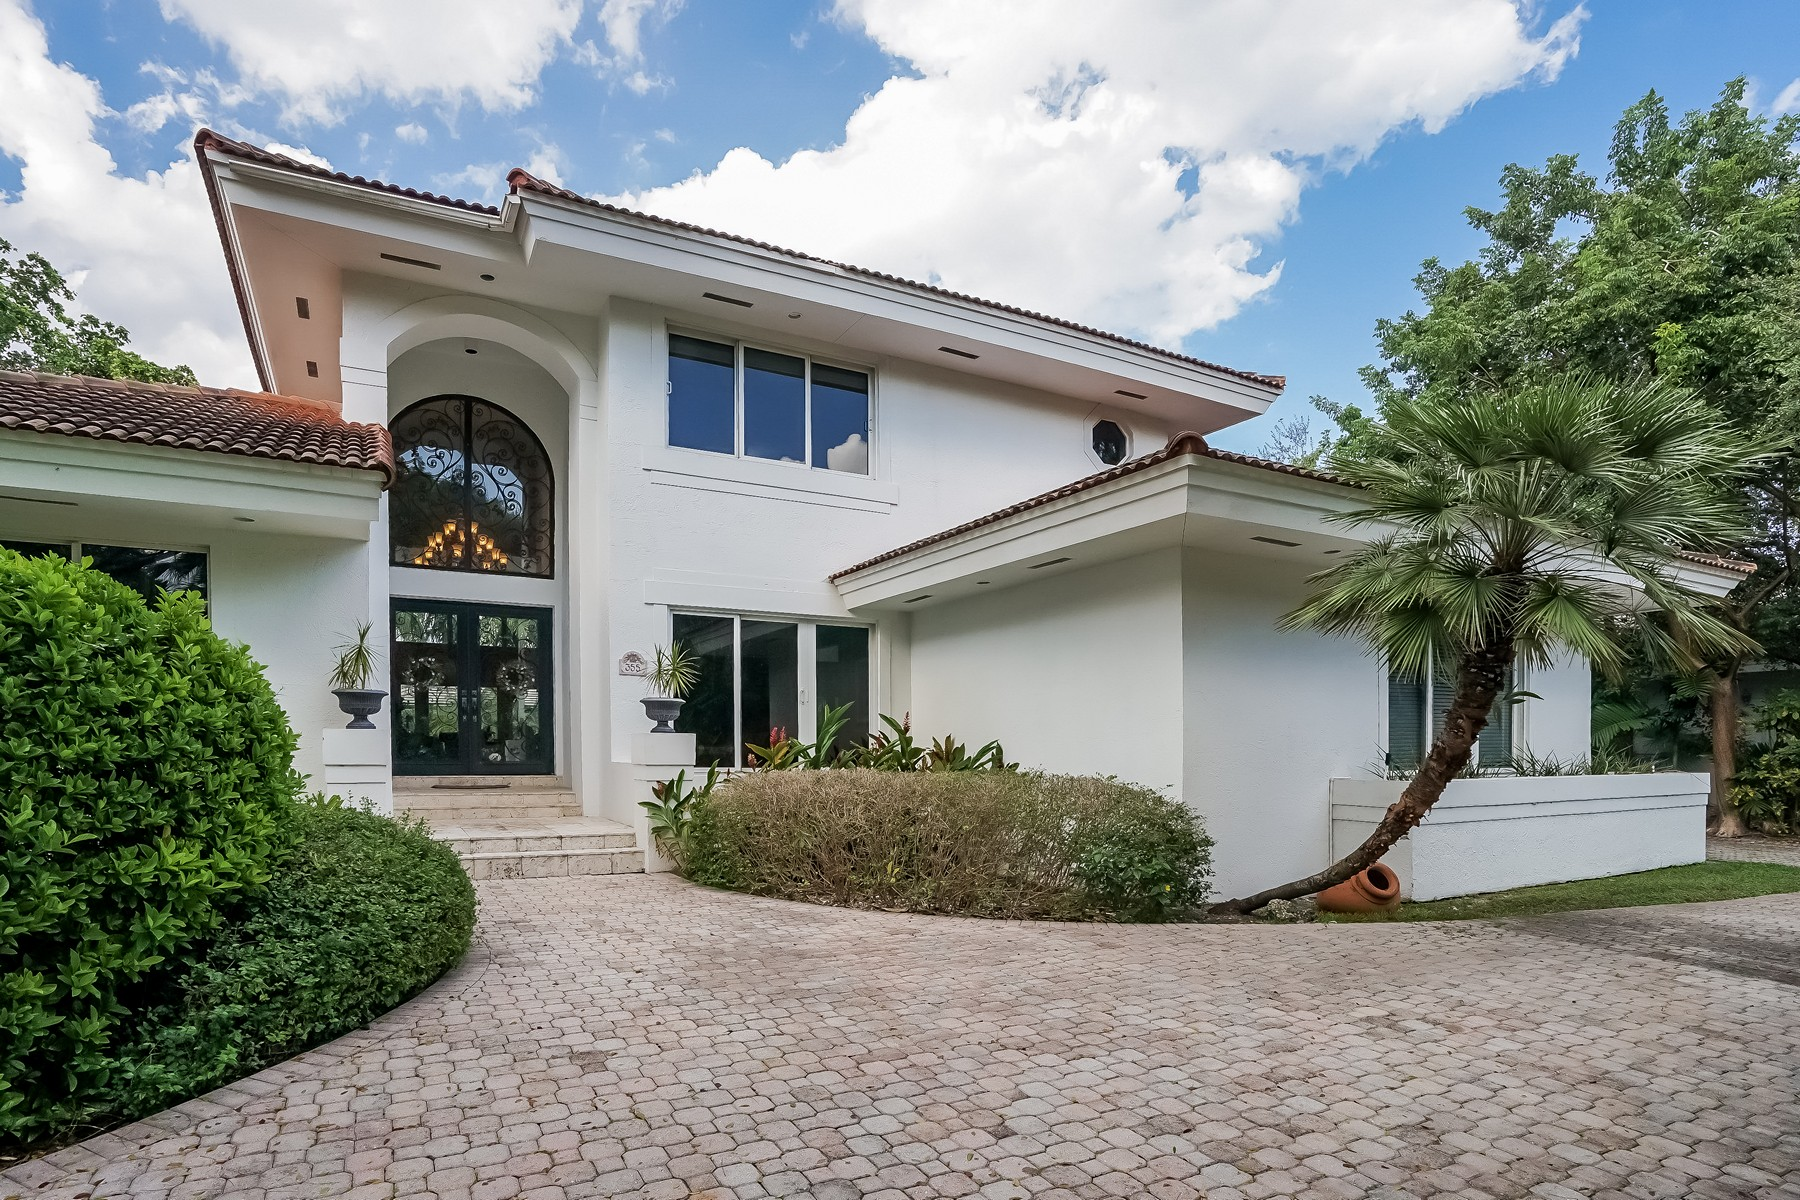 Property For Sale at 355 Costanera Rd